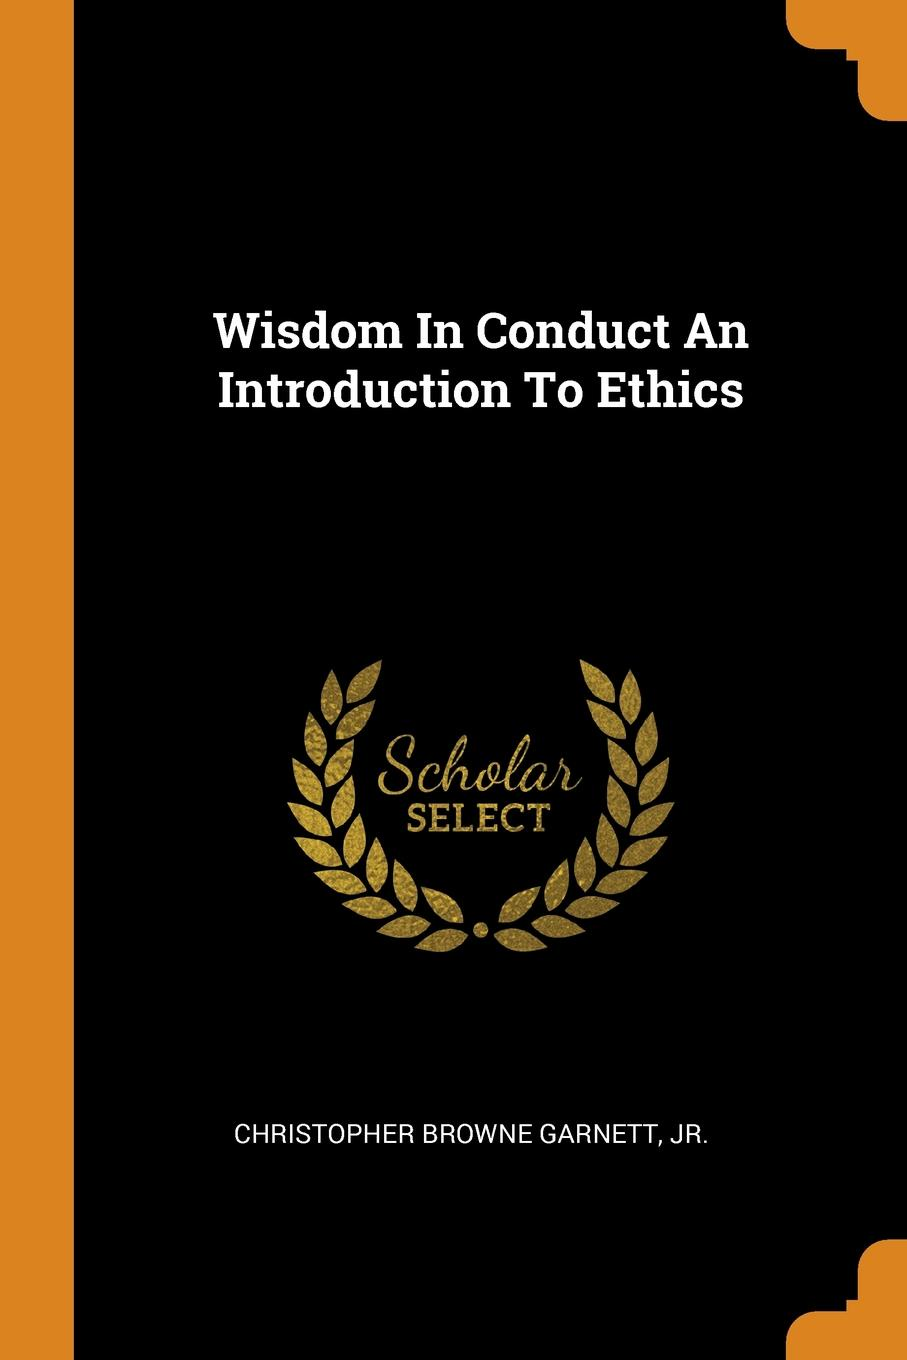 Christopher Browne Garnett Wisdom In Conduct An Introduction To Ethics jussi suikkanen this is ethics an introduction